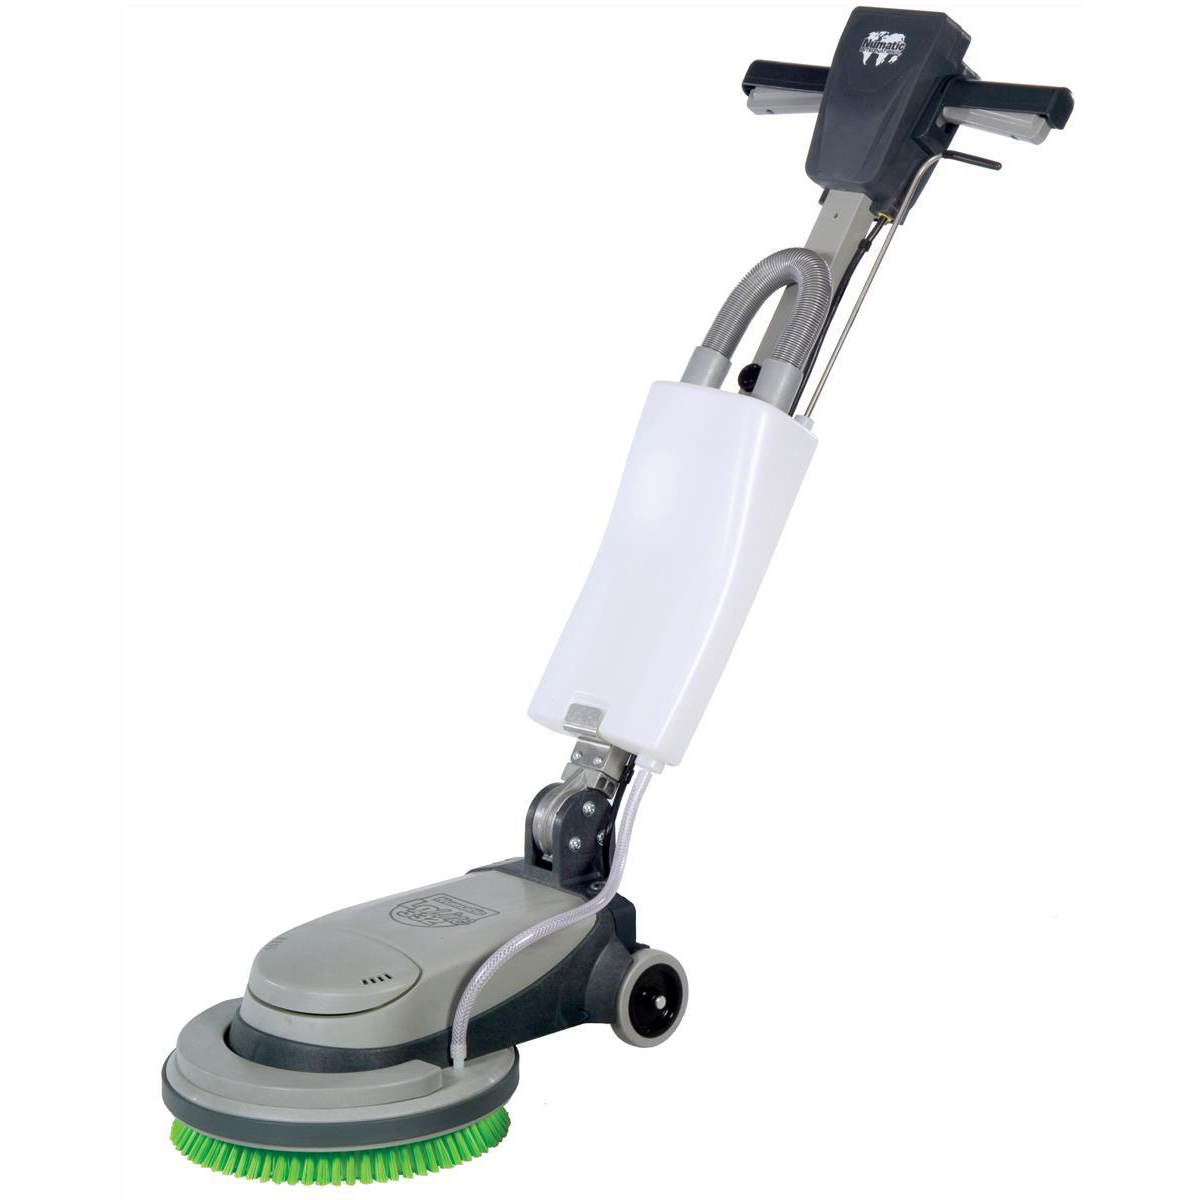 Numatic LoLine NLL332 Floor Cleaner with Tank & Brush 400W Motor 200rpm Head 32m Range 18kg Ref 899949